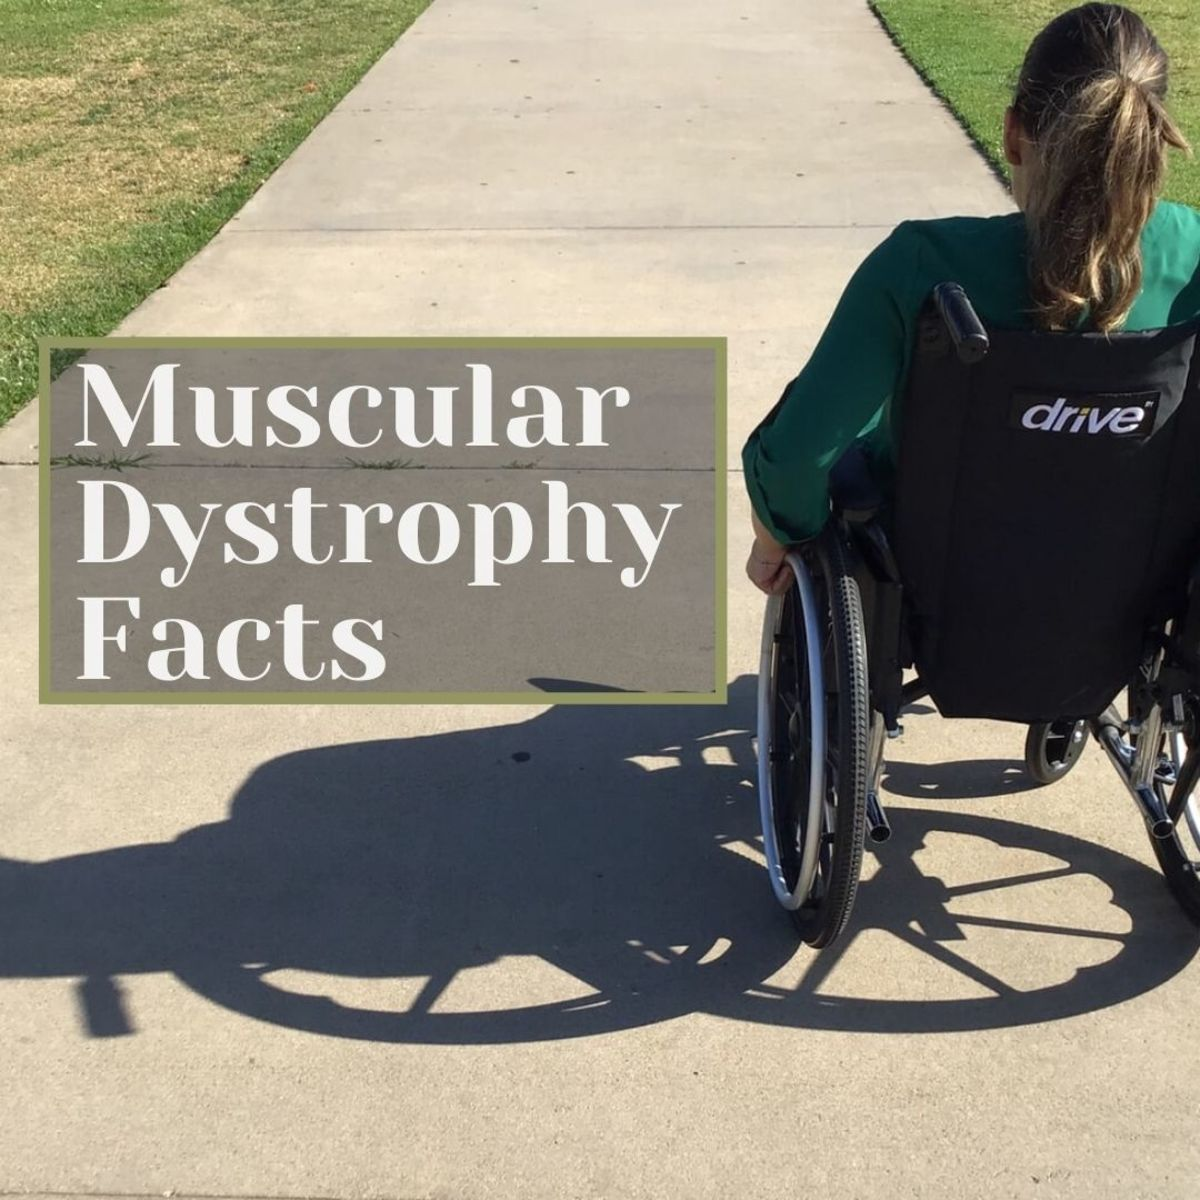 Muscular dystrophy can occur in both men and women, but it is most prevalent in men.